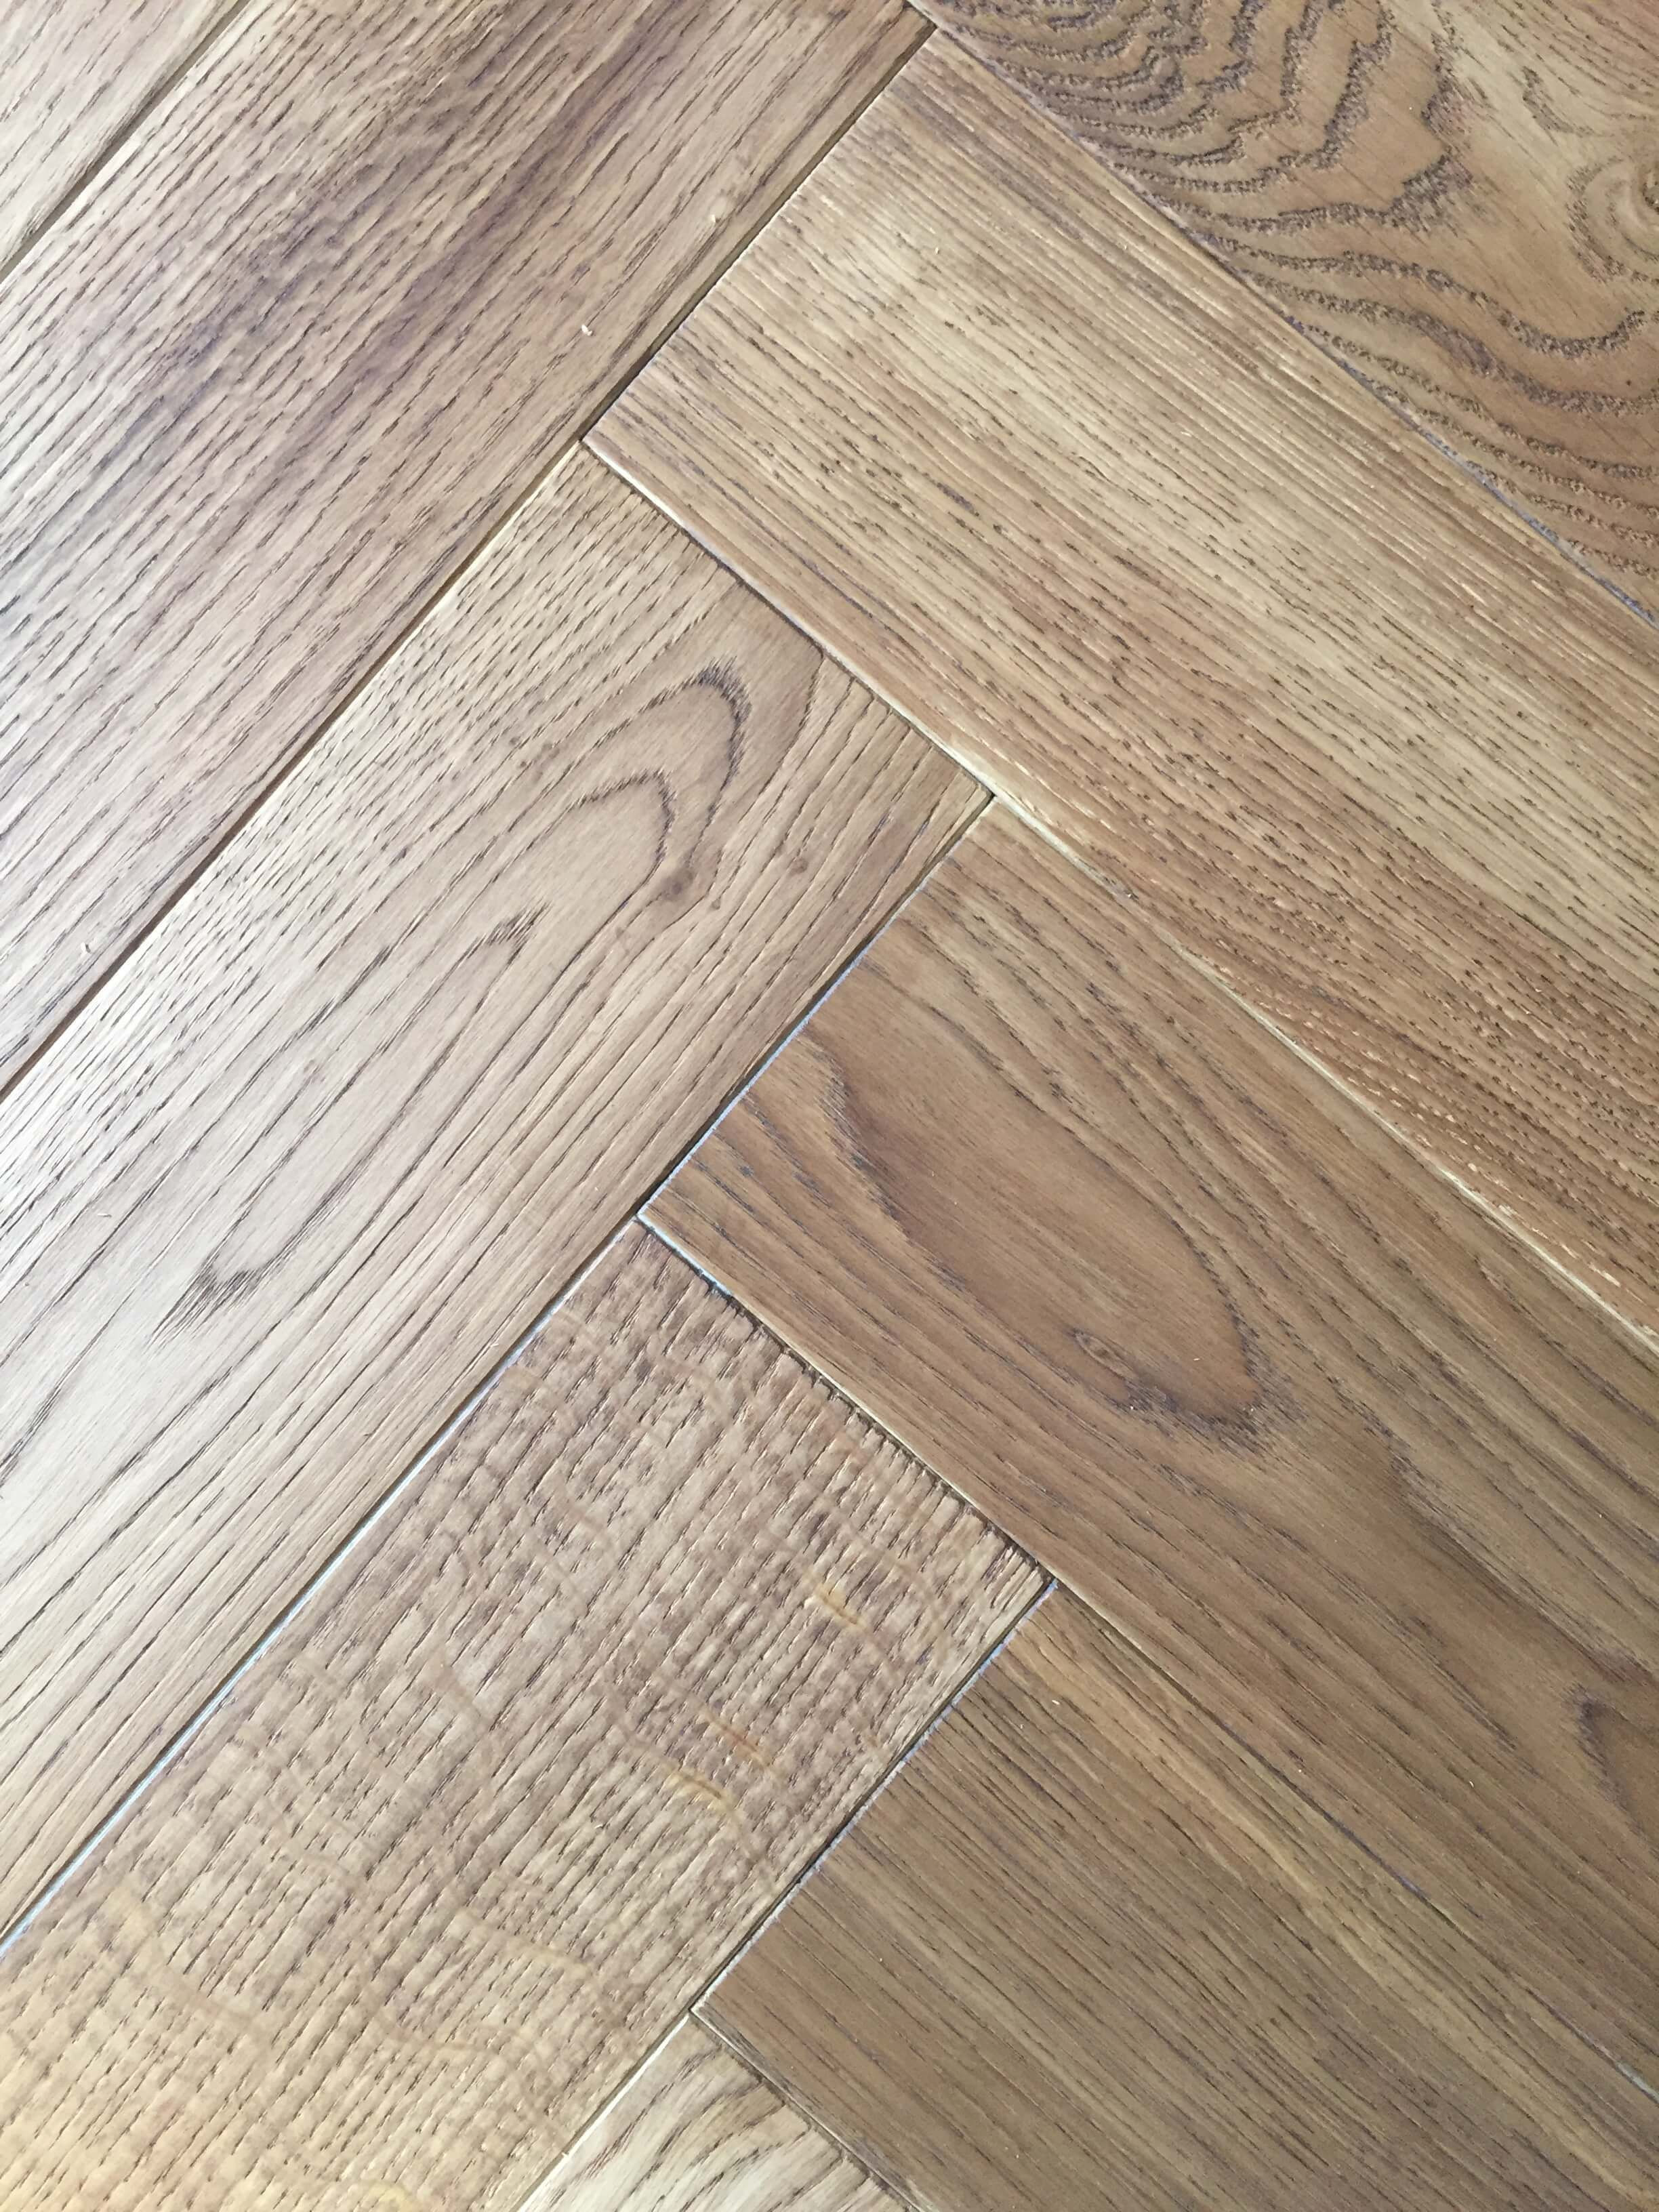 spotted gum hardwood flooring prices of floating hardwood floor floor plan ideas for floating hardwood floor how to install floating laminate wood flooring part 2 the